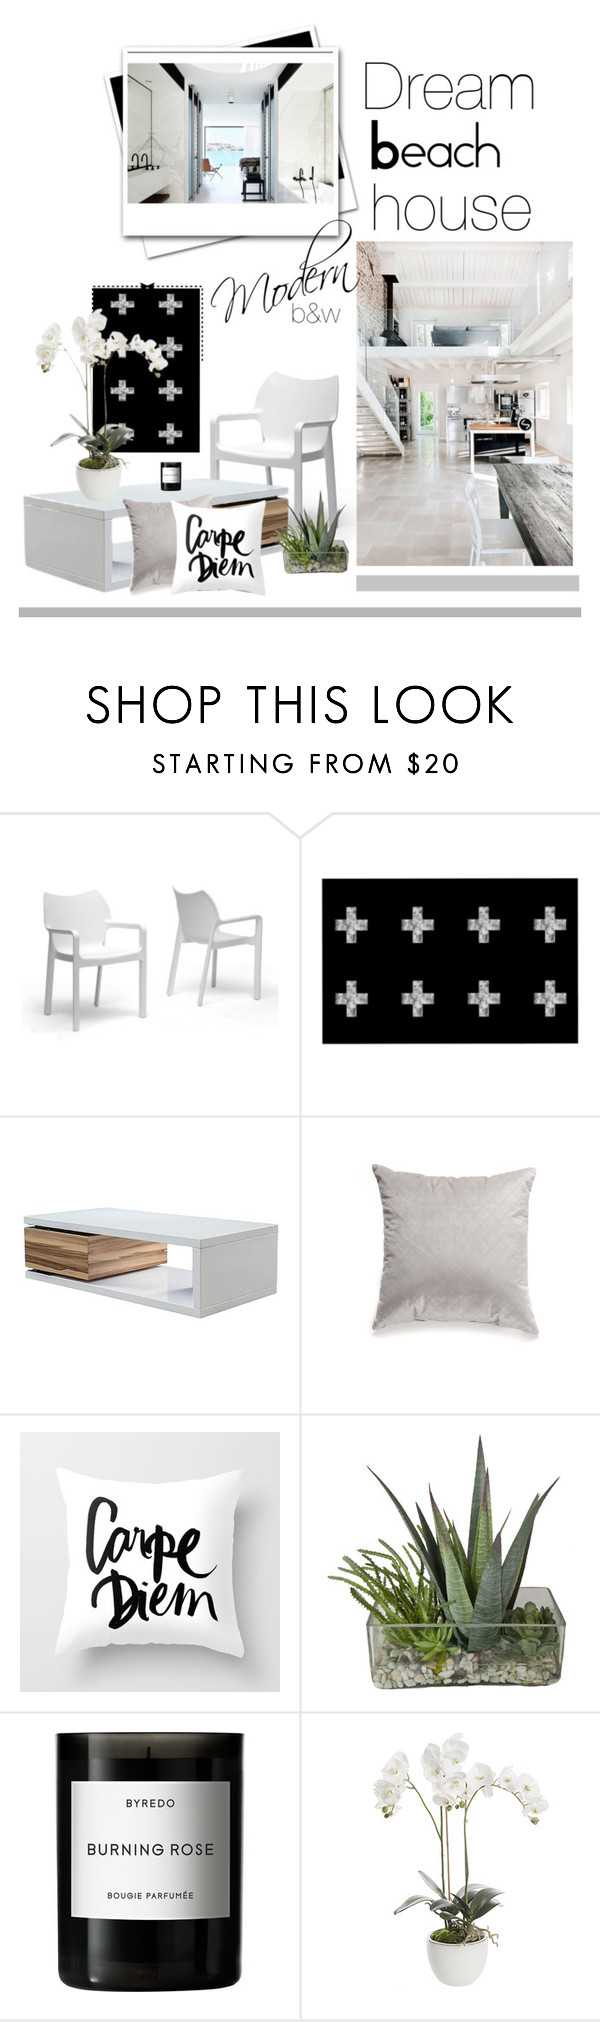 """""""dreams never end"""" by mutterfly ❤ liked on Polyvore featuring interior, interiors, interior design, home, home decor, interior decorating, Baxton Studio, Christopher Knight Home, Home Fashions International and Byredo"""